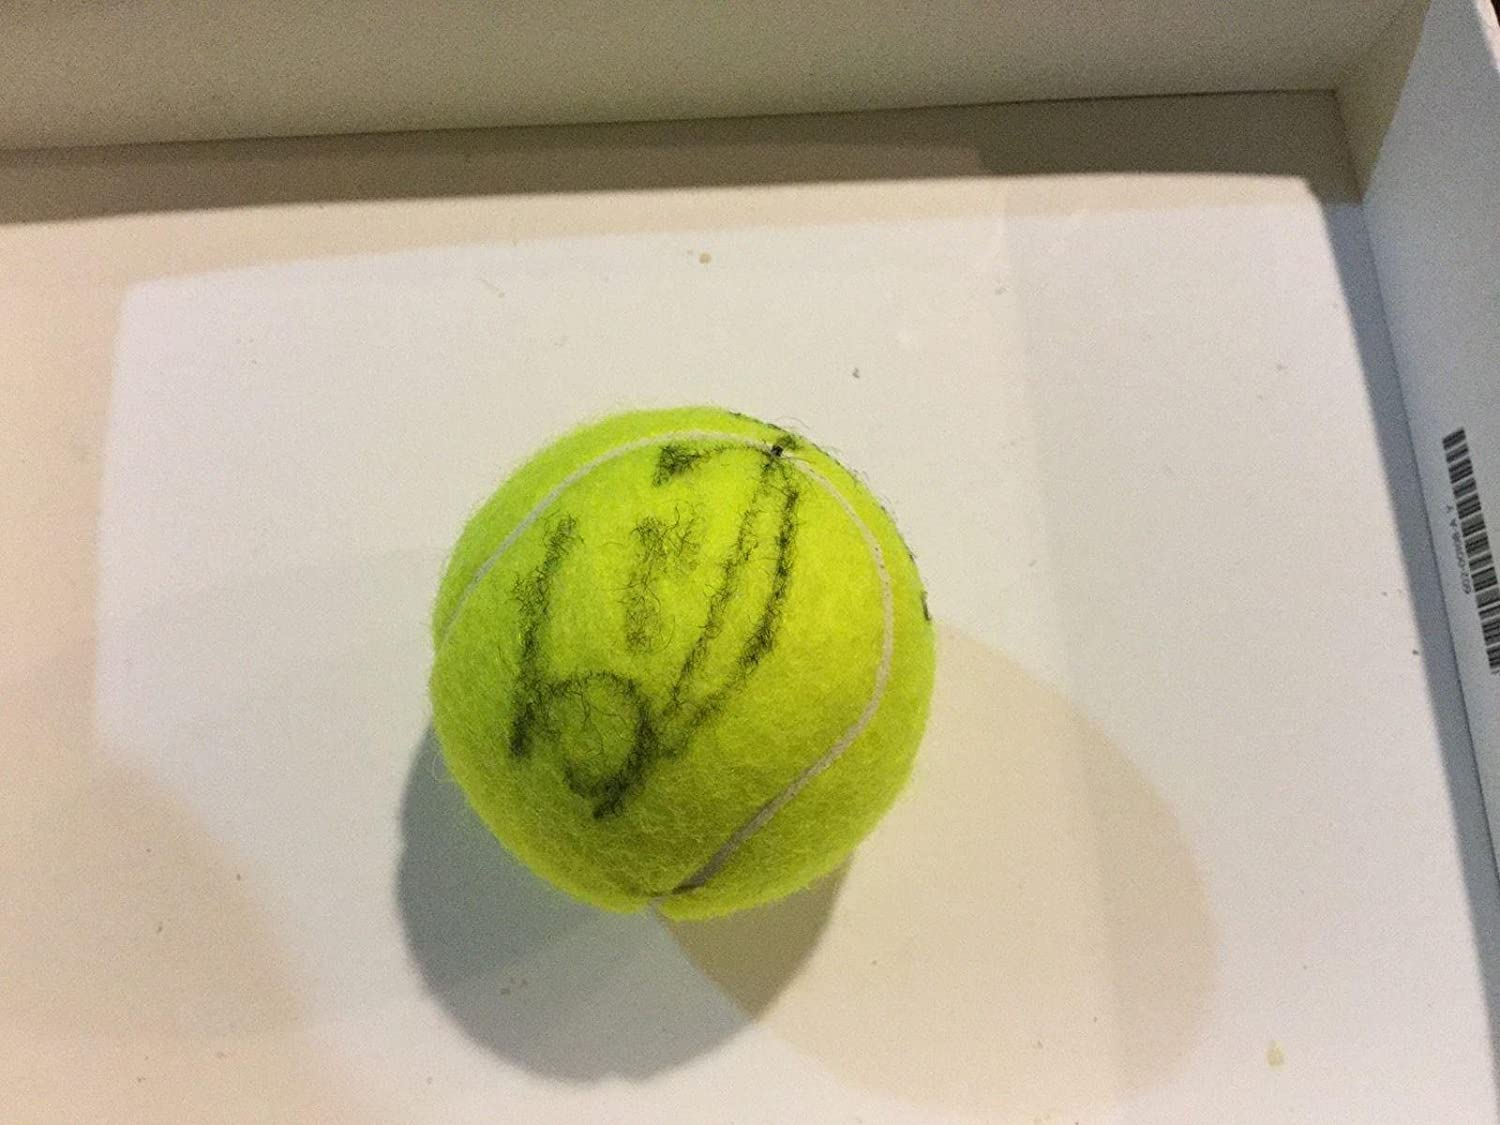 Elina Svitolina Signed Slazenger Wimbledon Tennis Ball Autographed PROOF a - Autographed Tennis Balls at Amazons Sports Collectibles Store